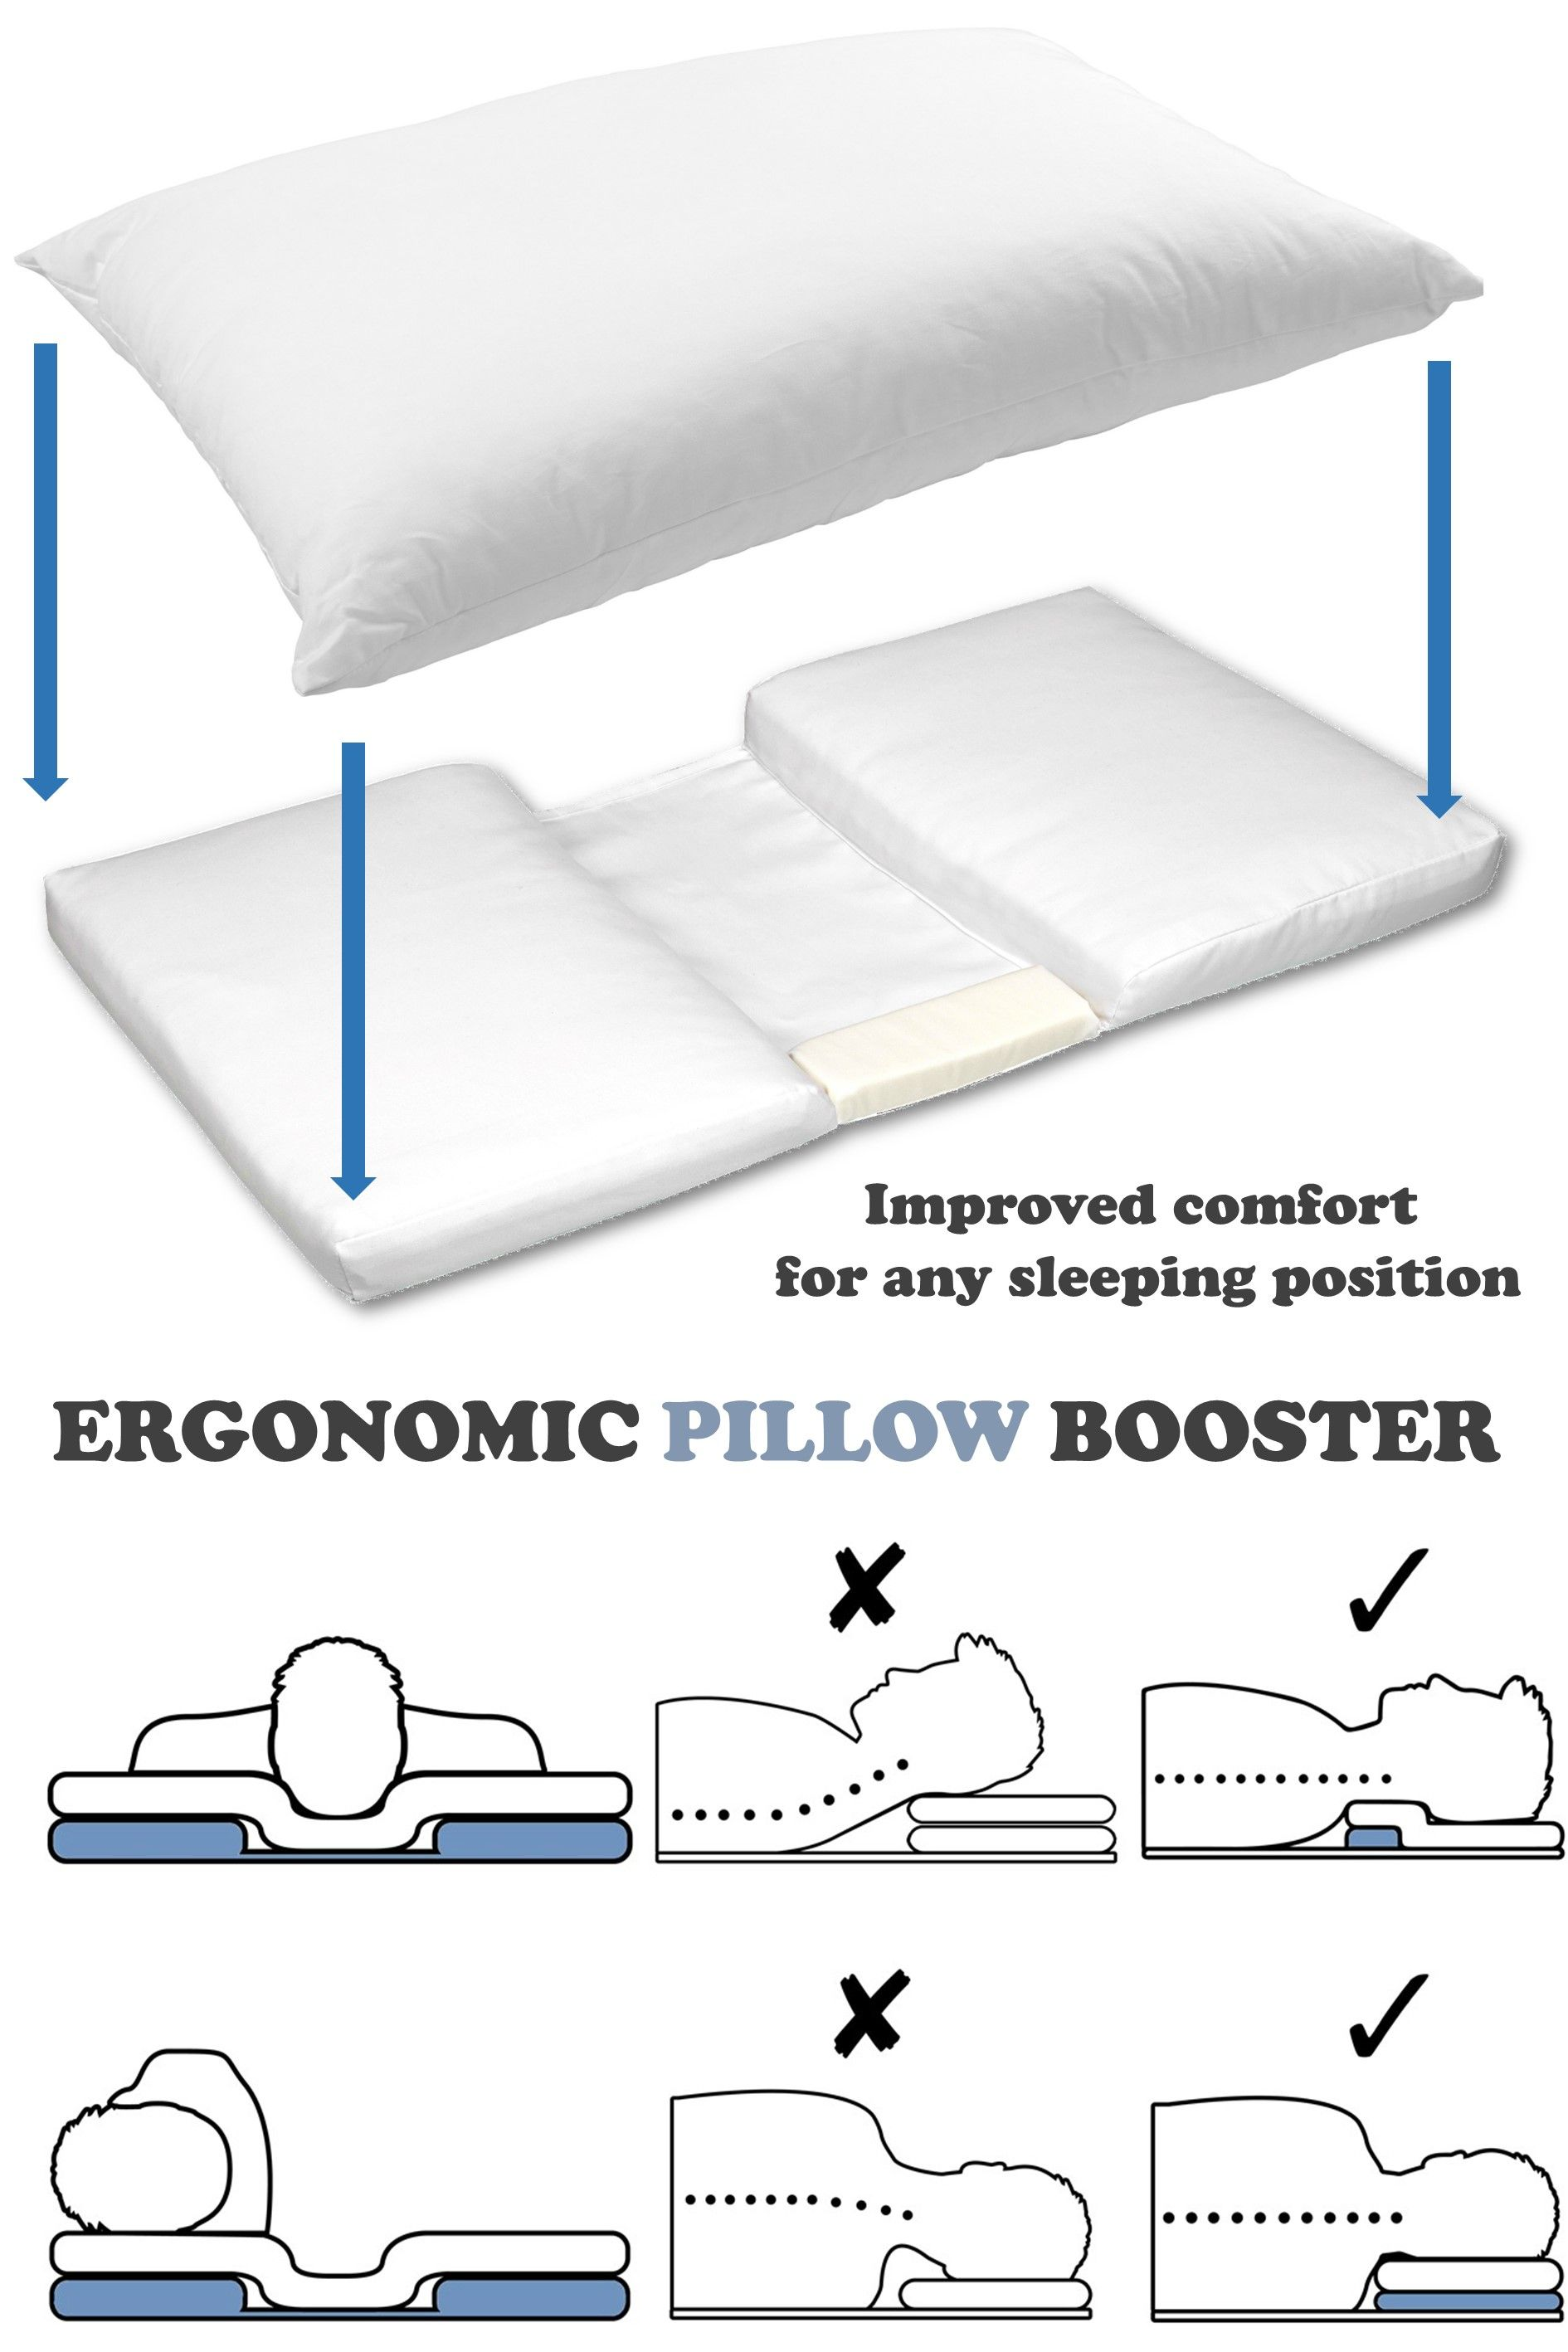 The groundbreaking ergonomic pillow booster works with your pillow